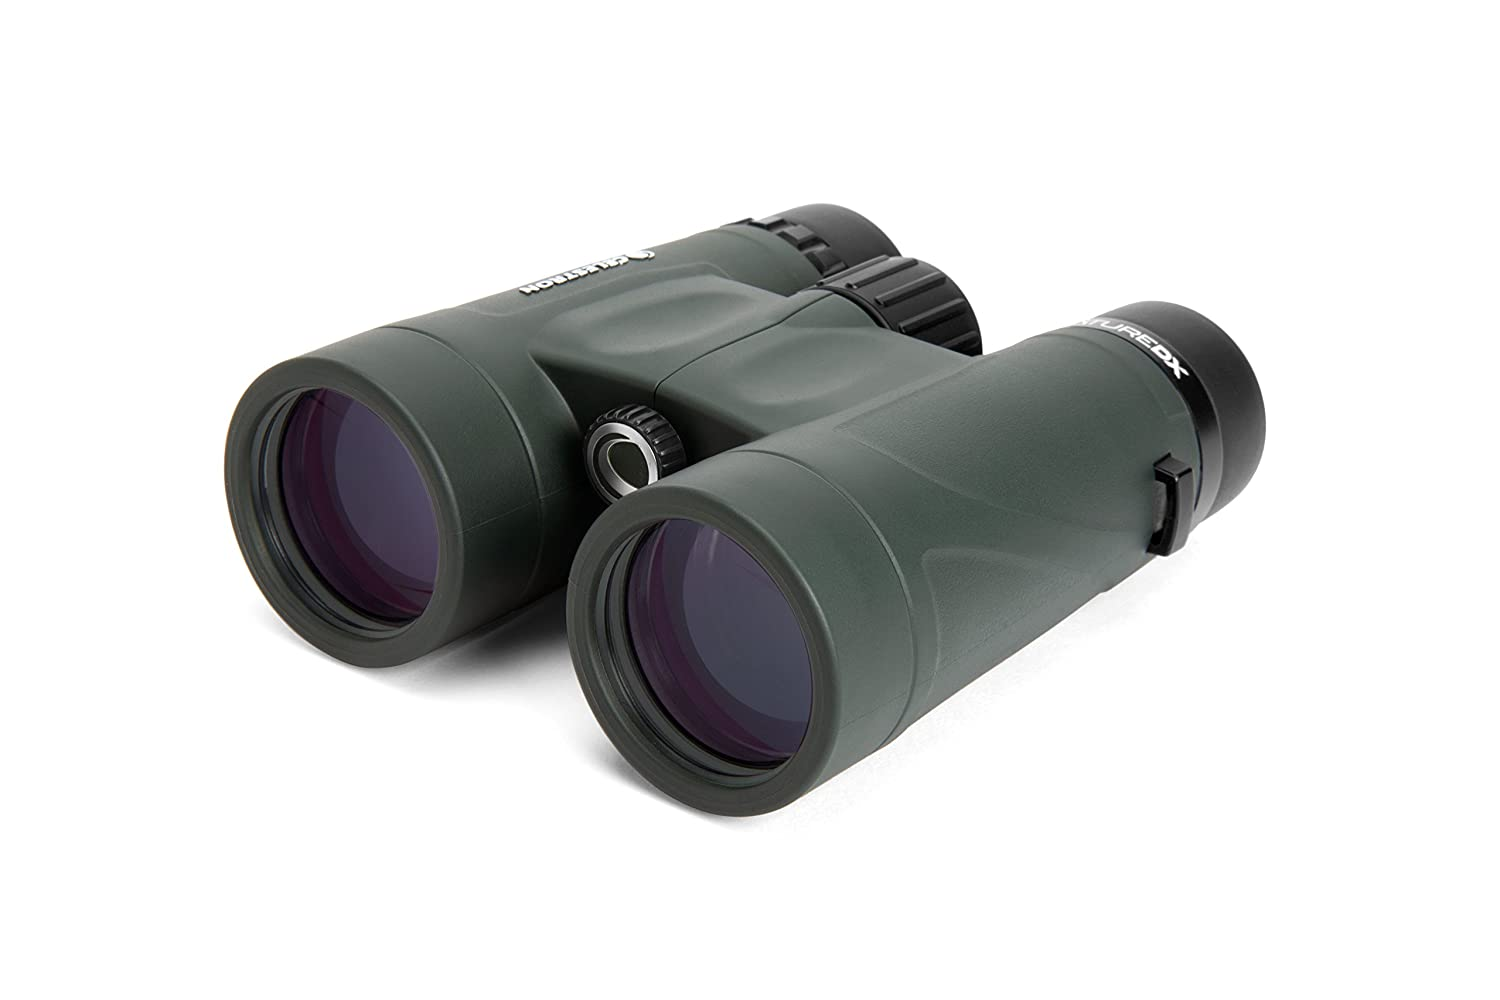 Celestron - Nature DX 8x42 Binocular - Top Rated Birding Binoculars - Fully Multi-Coated Optics with Phase Coated BaK-4 Prisms - Waterproof, Fogproof, and Rubber Armored - 6.5' Close Focus